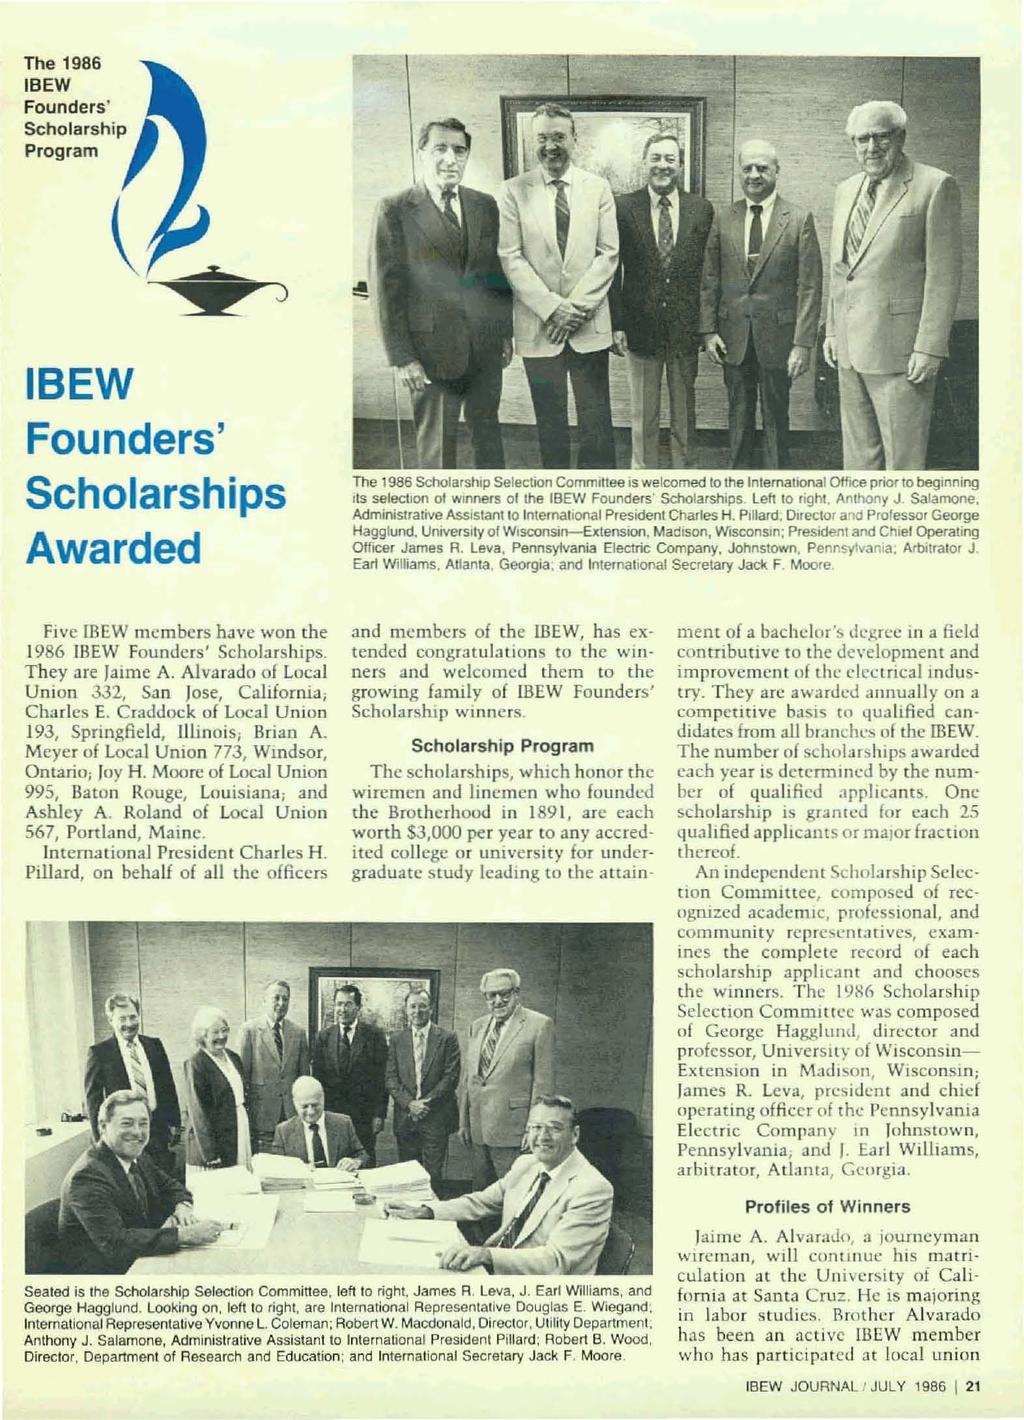 The 1986 IBEW Founders' Scholarship Program IBEW Founders' Scholarships Awarded The 1986 Scholarship Selection Committee IS welcomed to the Intemational ()tf1ce prior to beginning Its selection 01